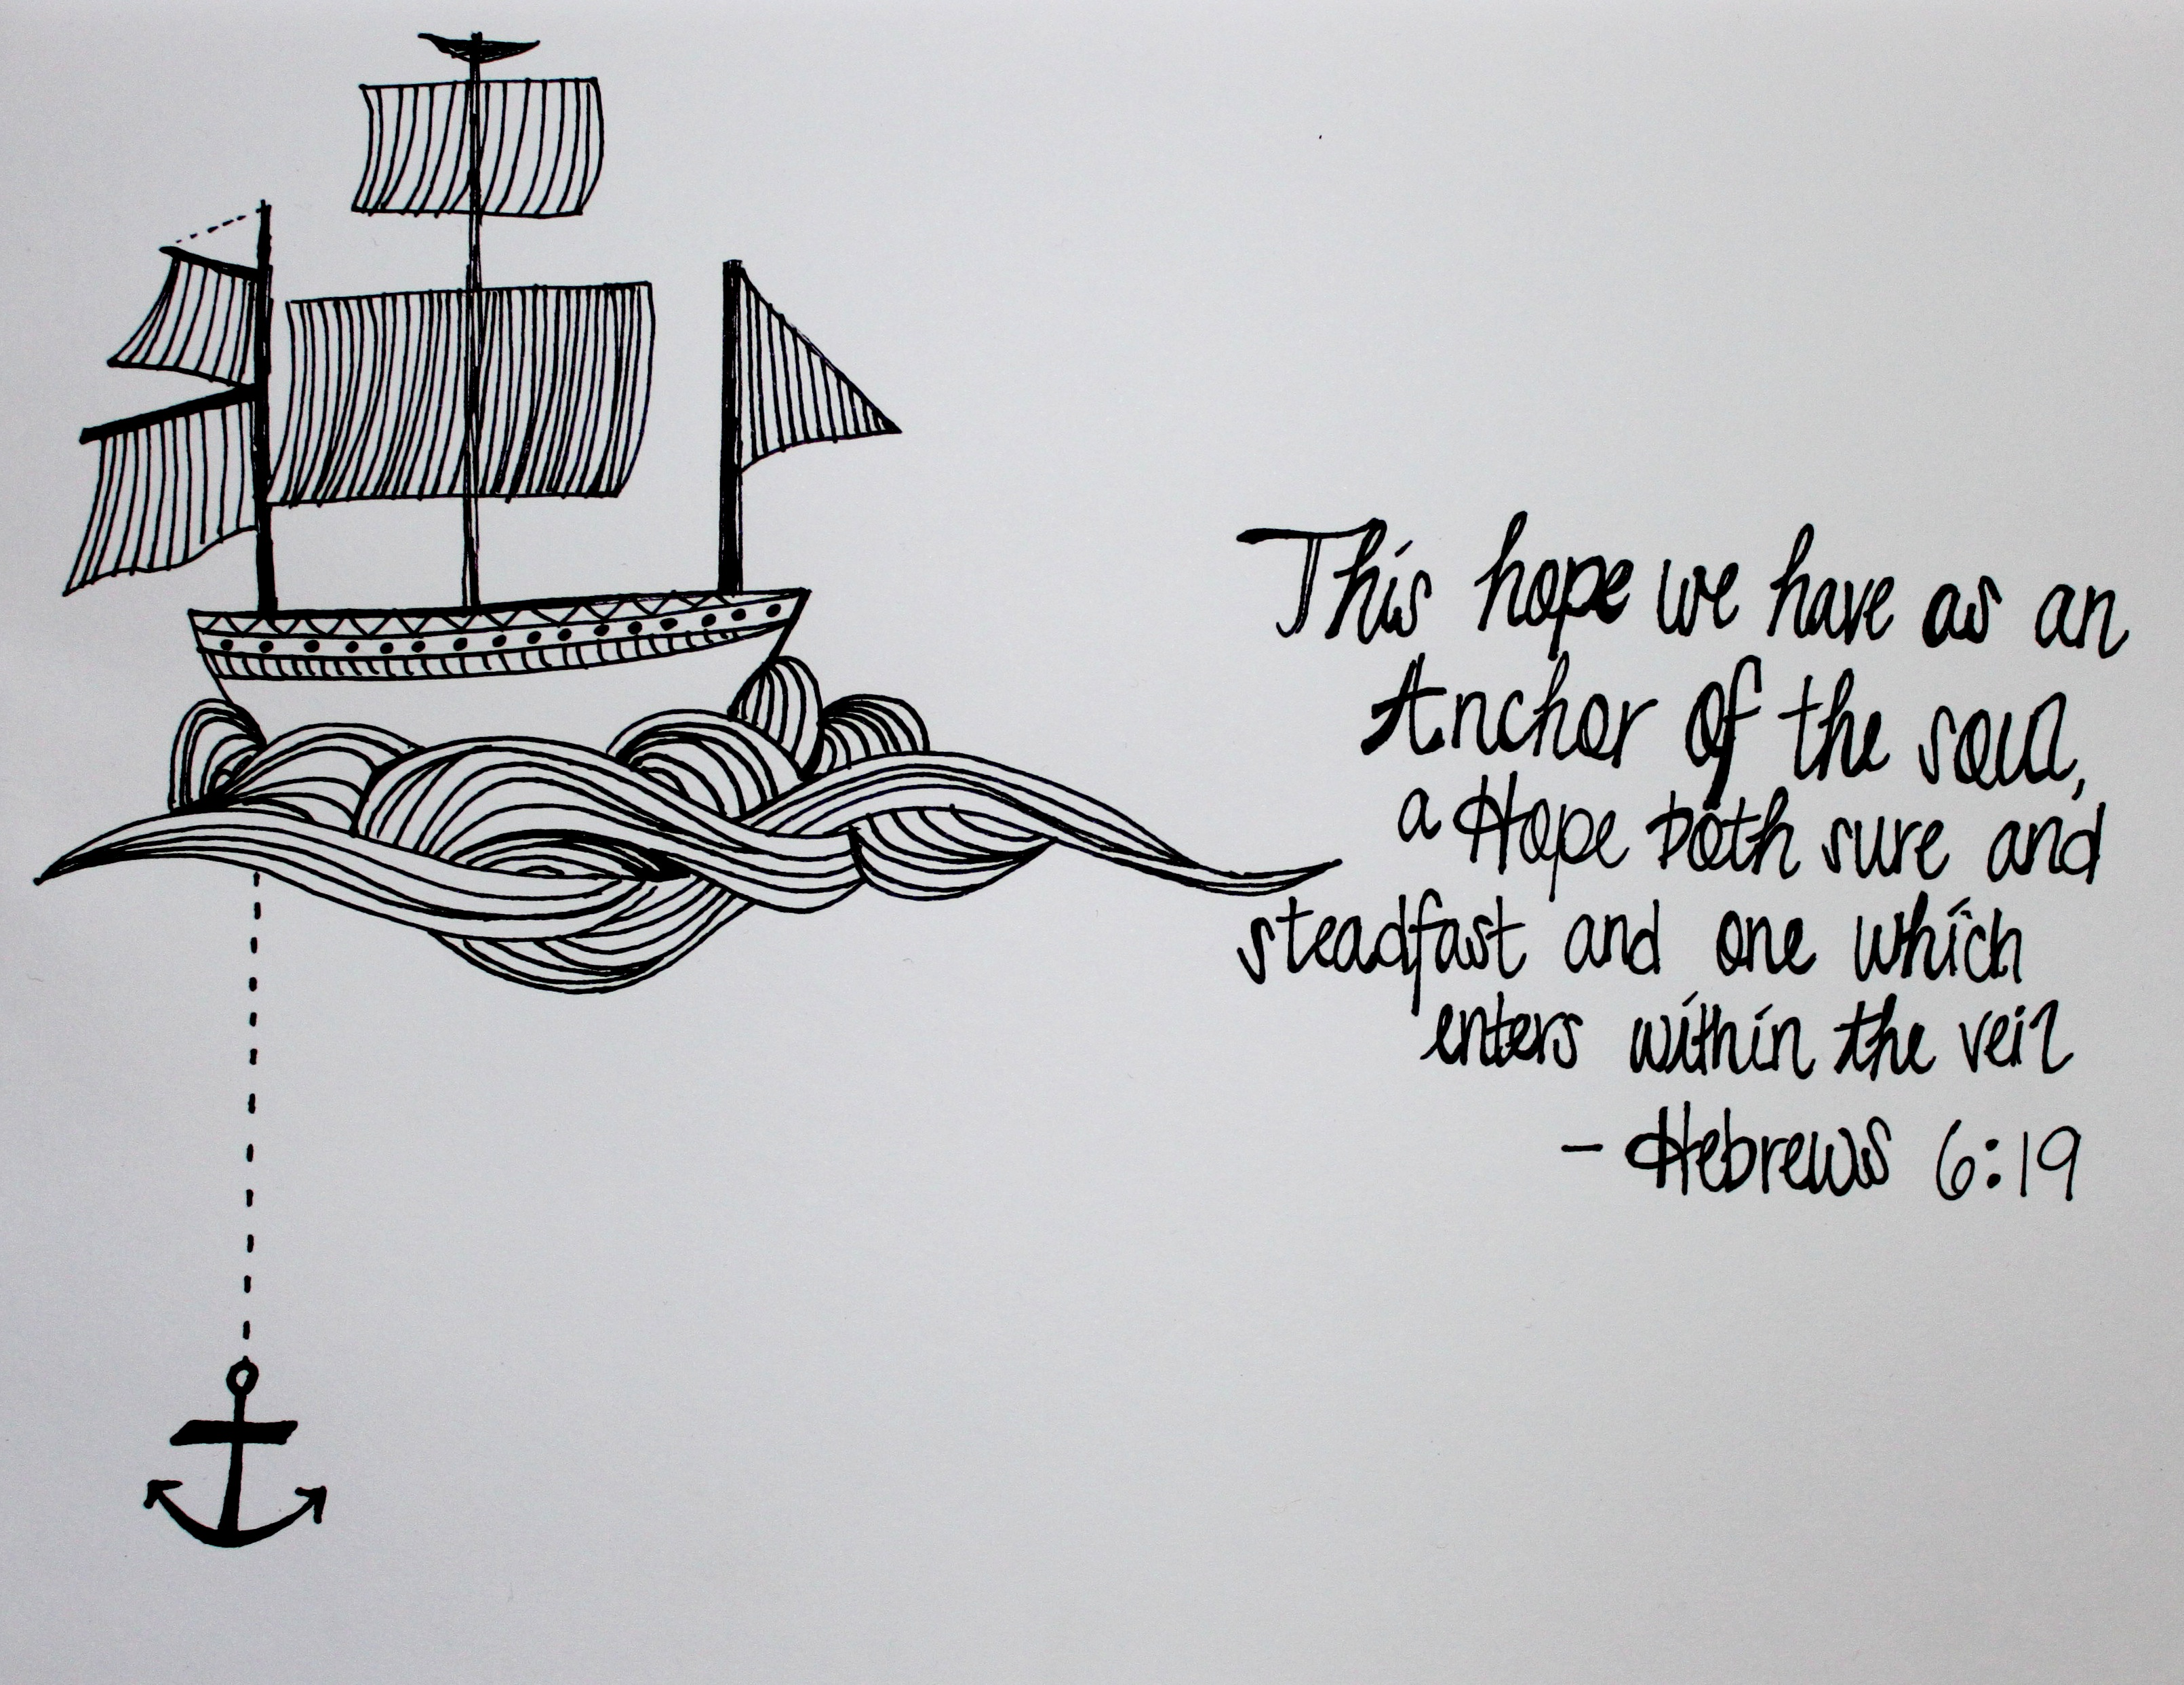 Drawn anchor bible verse The Best of Soul Scriptures